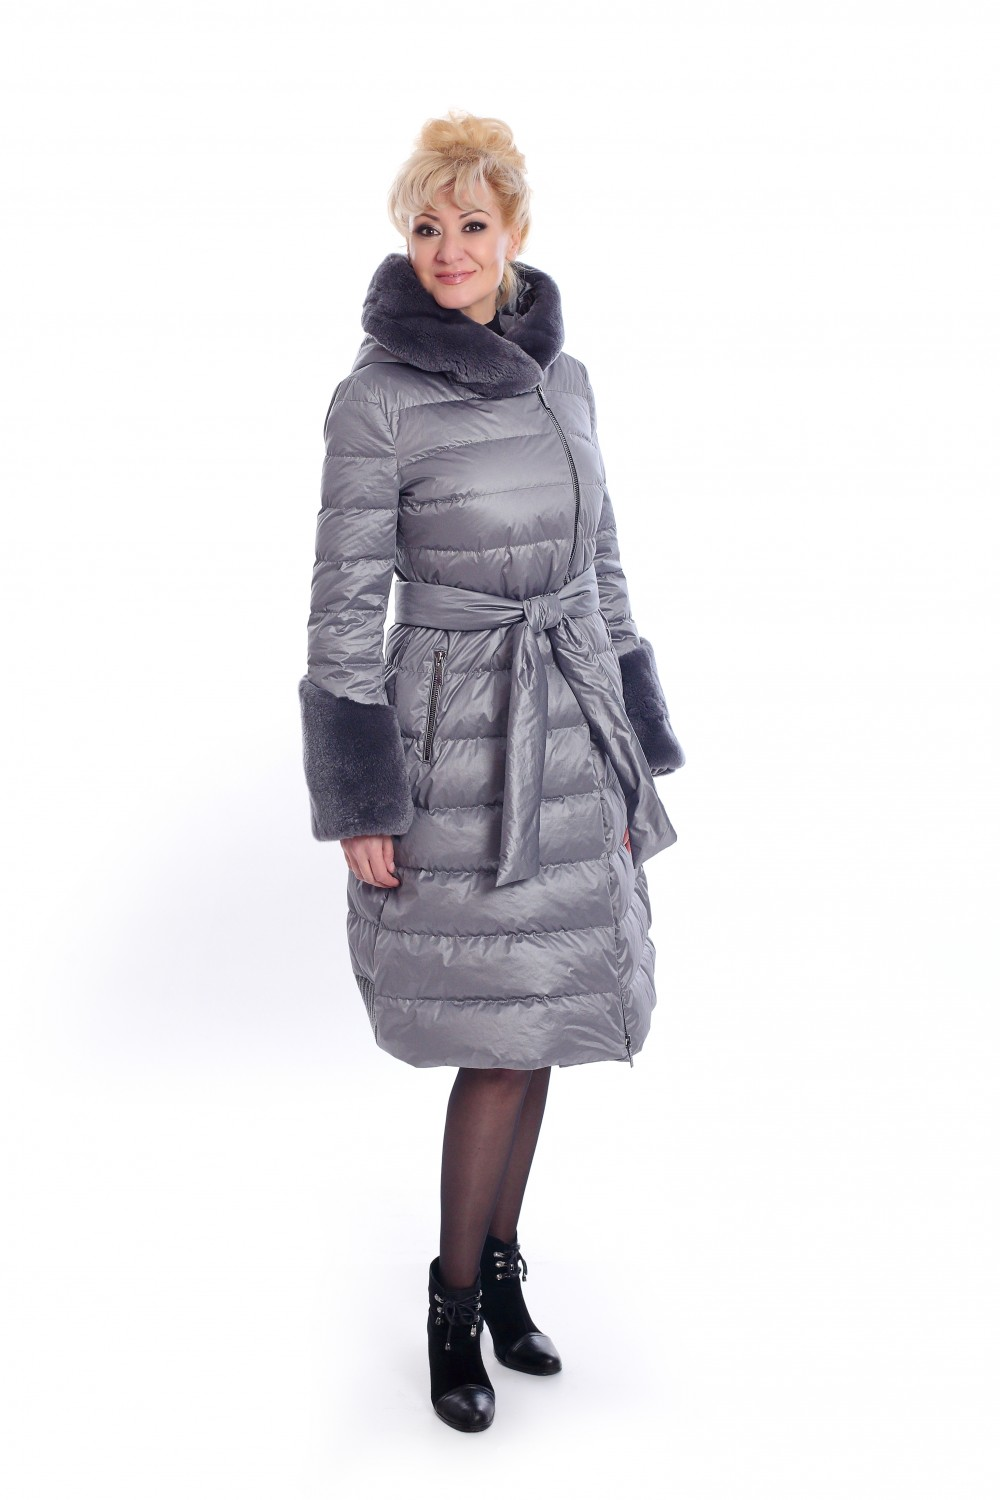 Long, gray, down jacket with hood and cuffs from rabbit fur